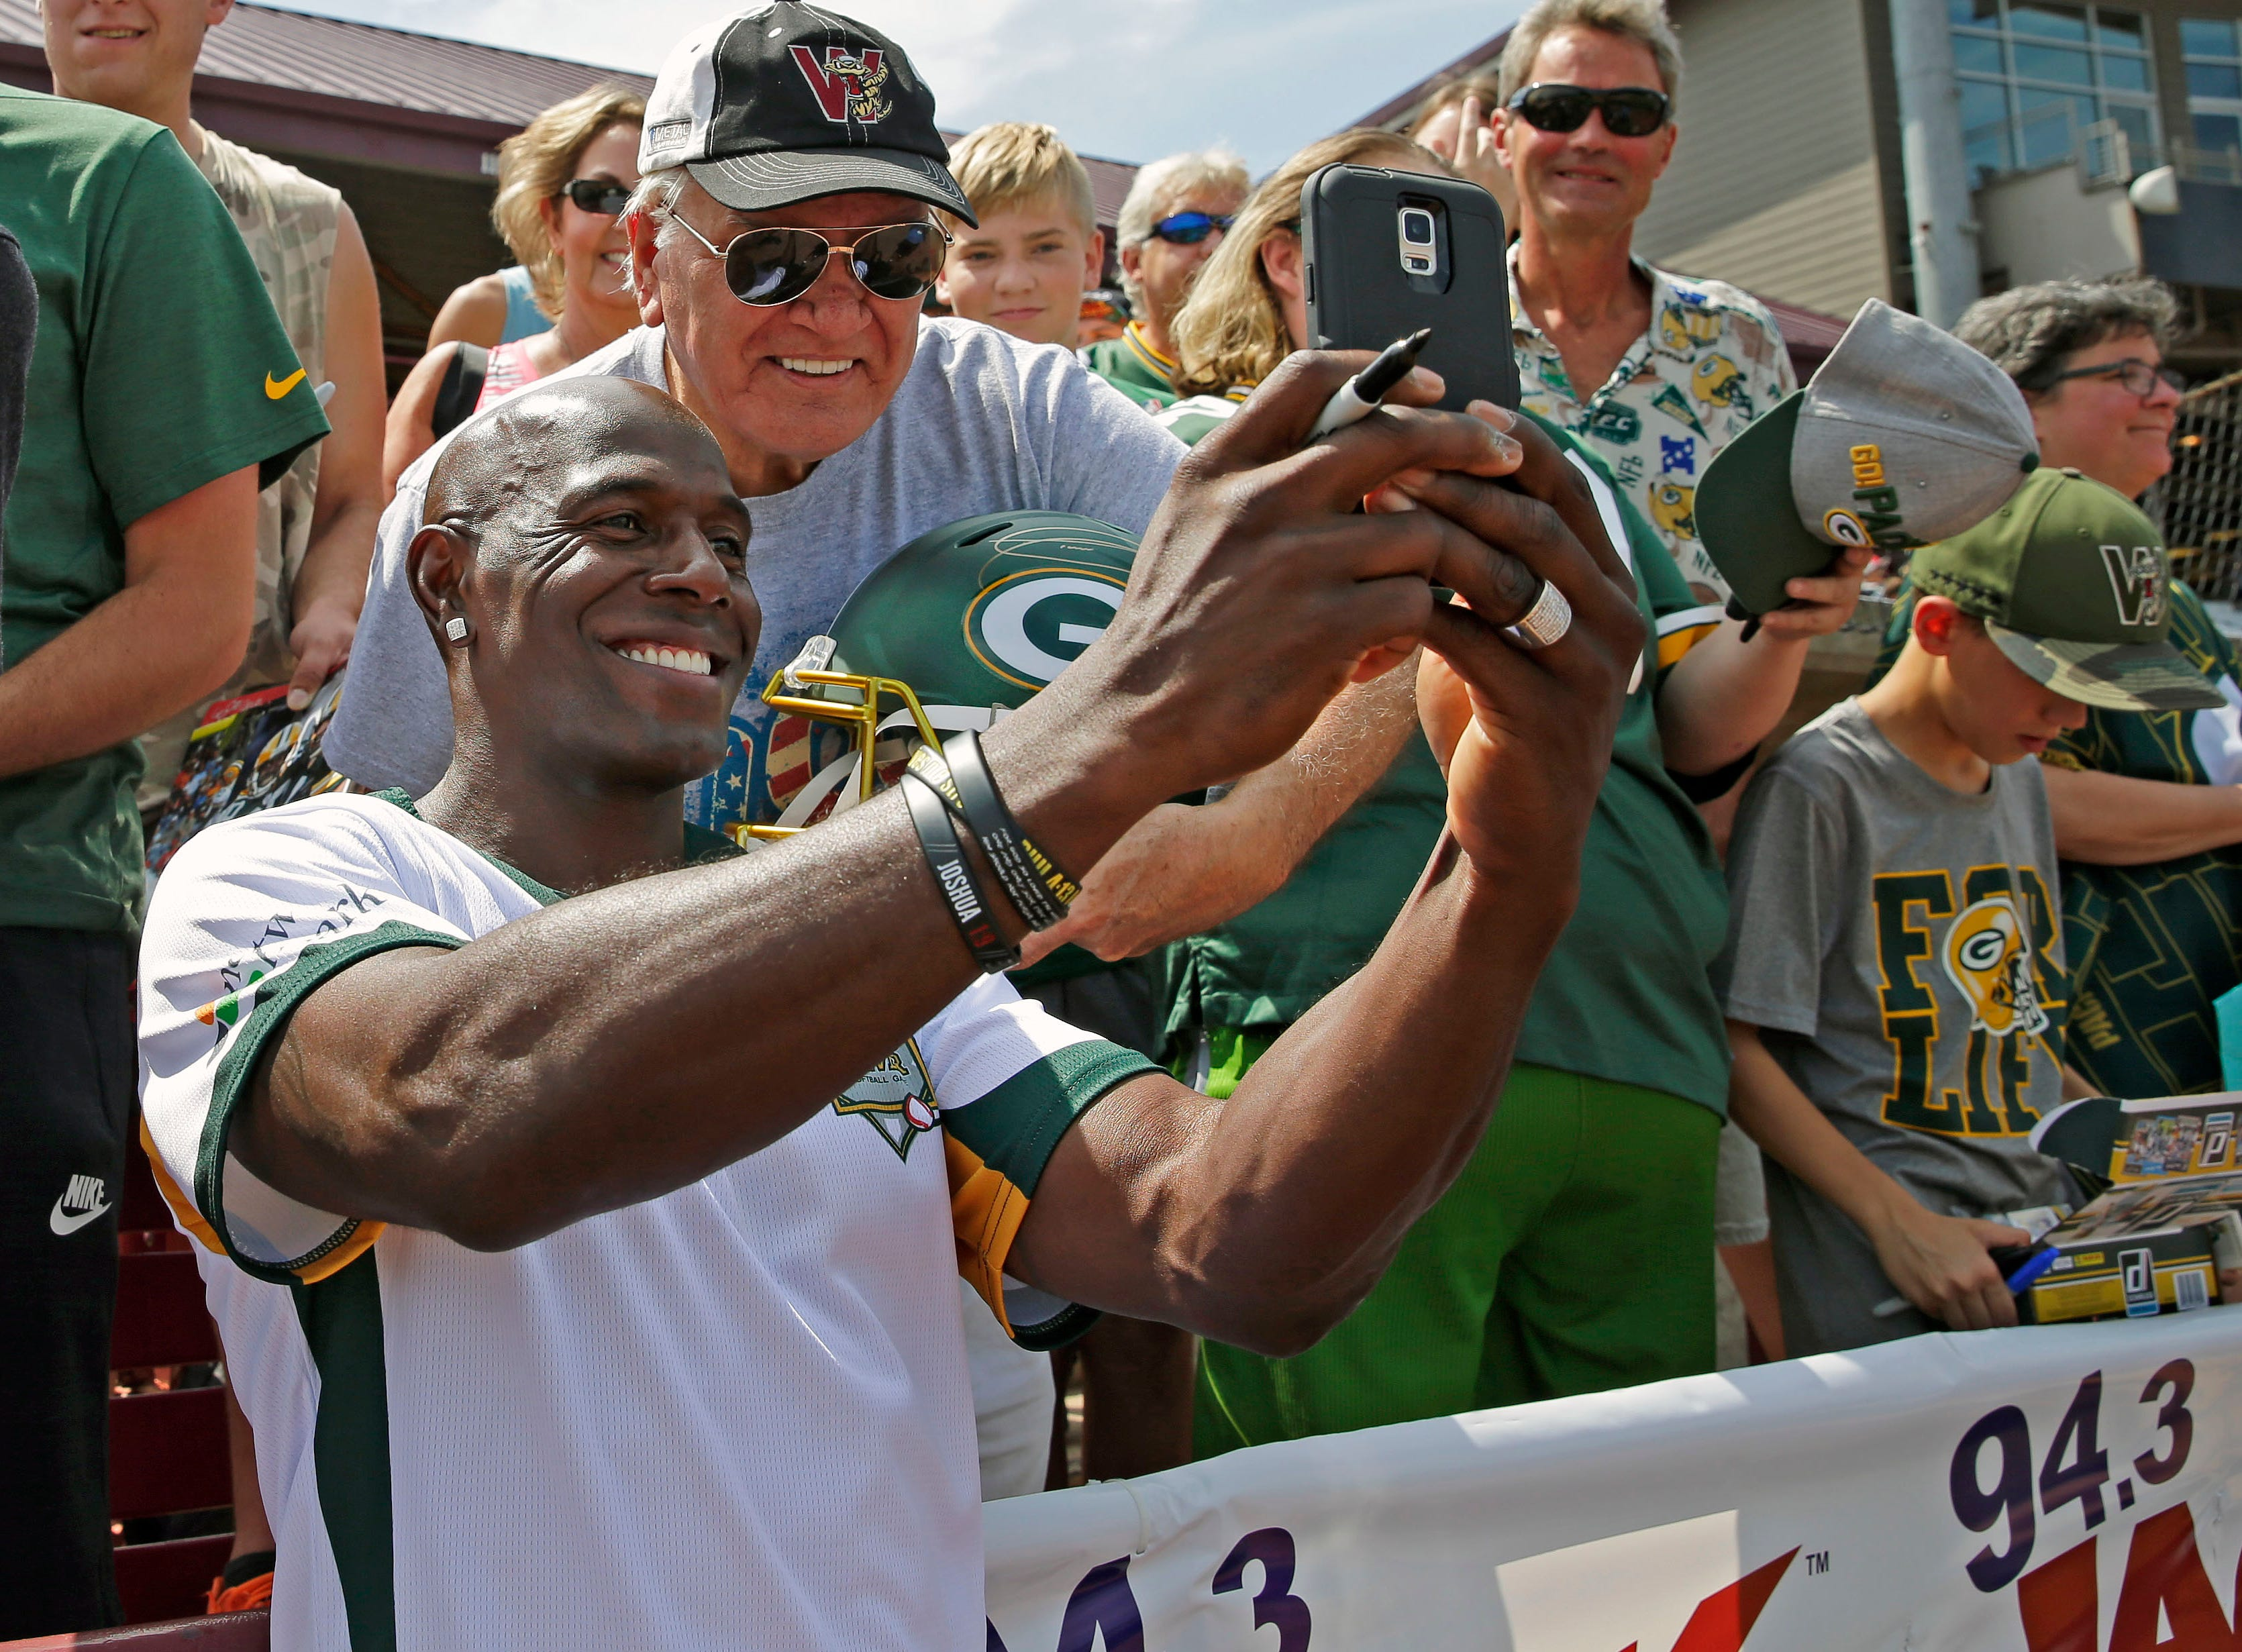 Ollie Brien gets a photo with Donald Driver before the charity softball game Sunday, August 5, 2018, at Neuroscience Group Field at Fox Cities Stadium in Grand Chute, Wis.